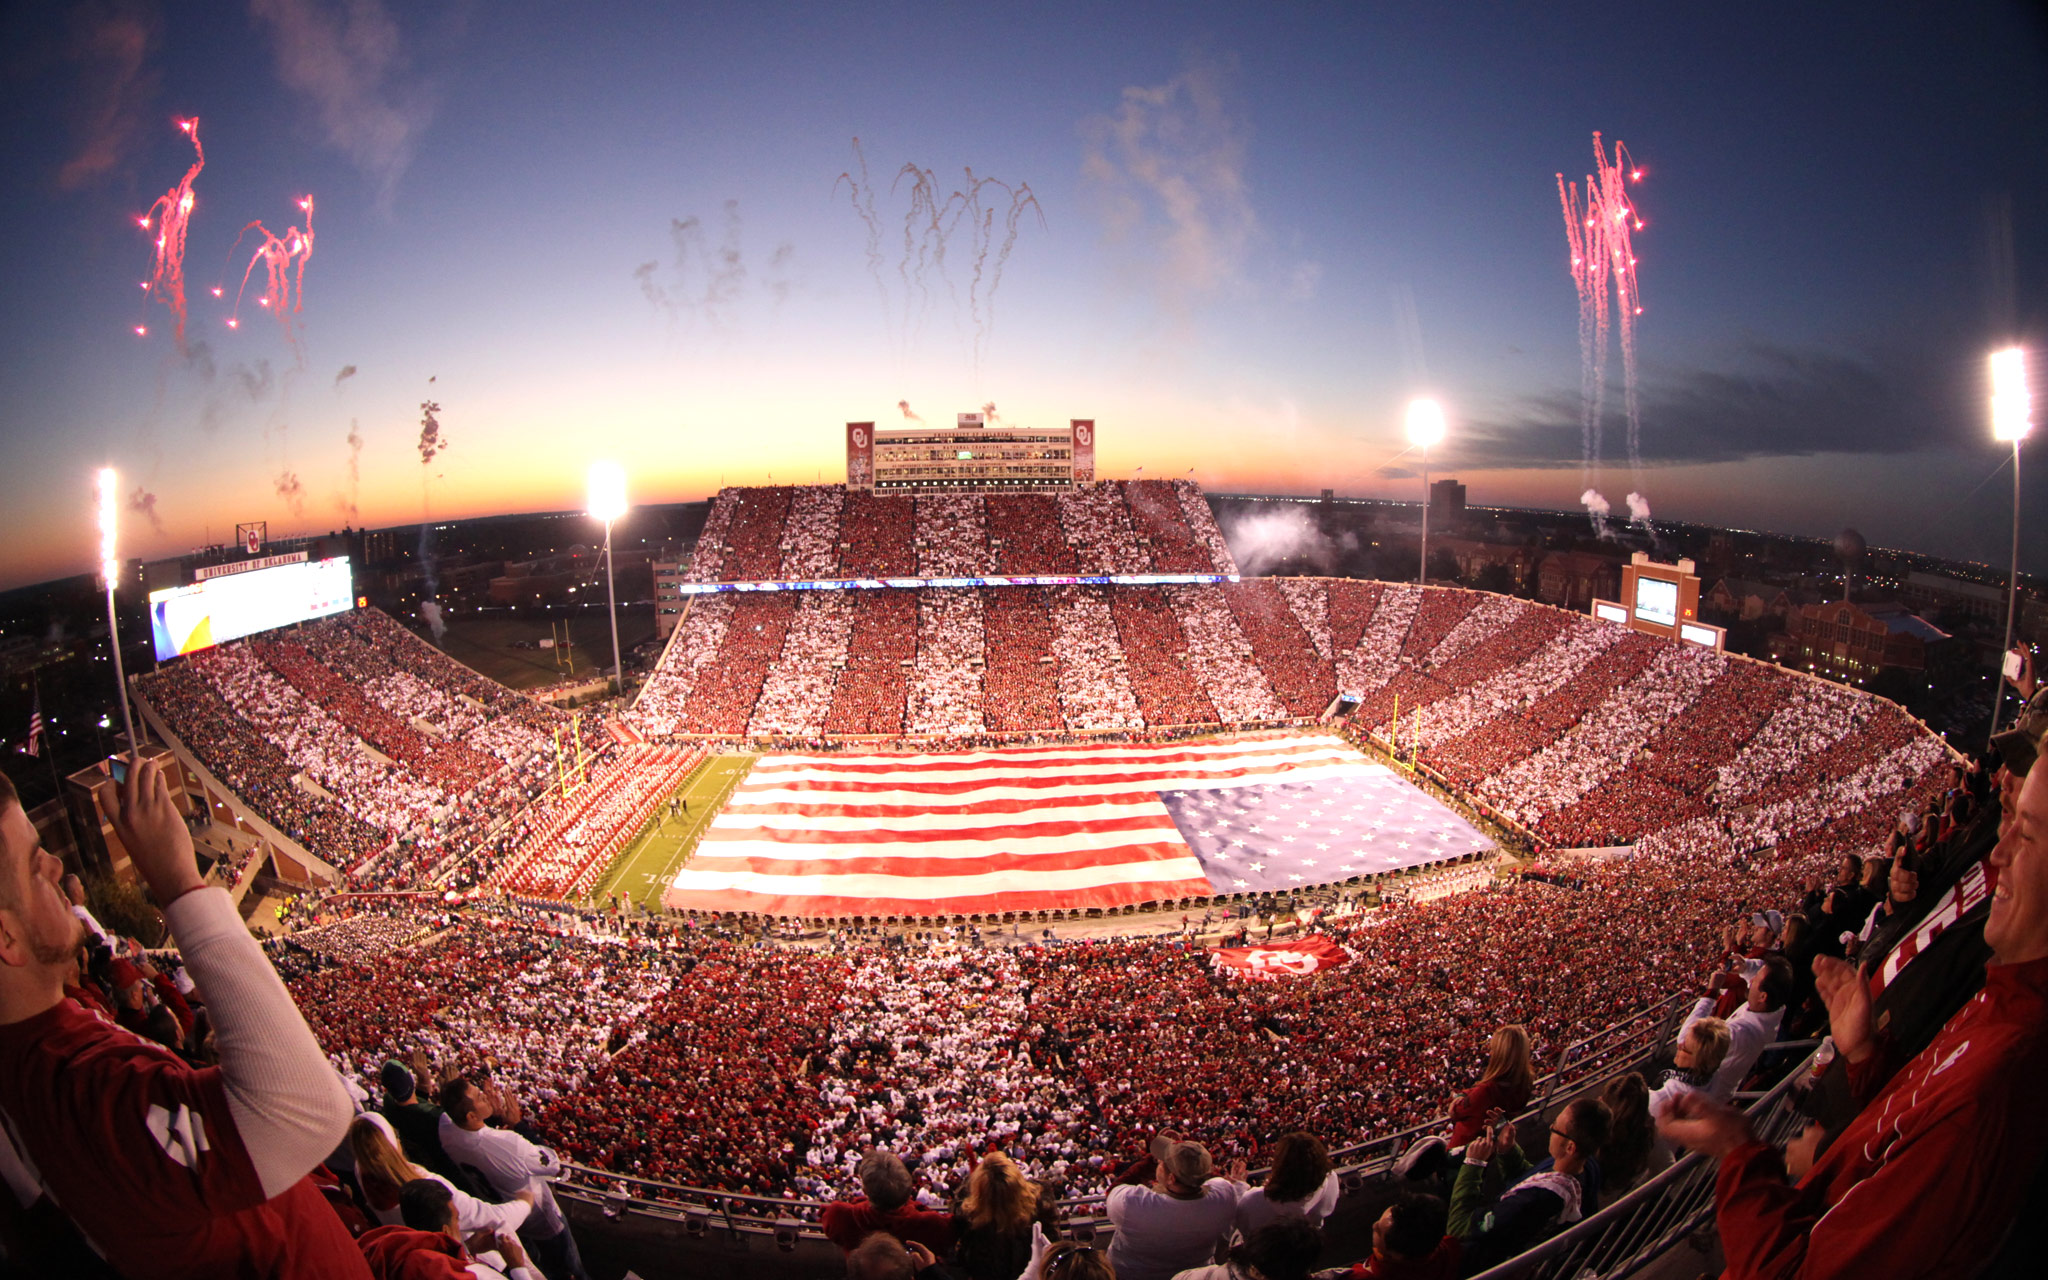 19 gaylord family memorial stadium (oklahoma) - best college football stadiums